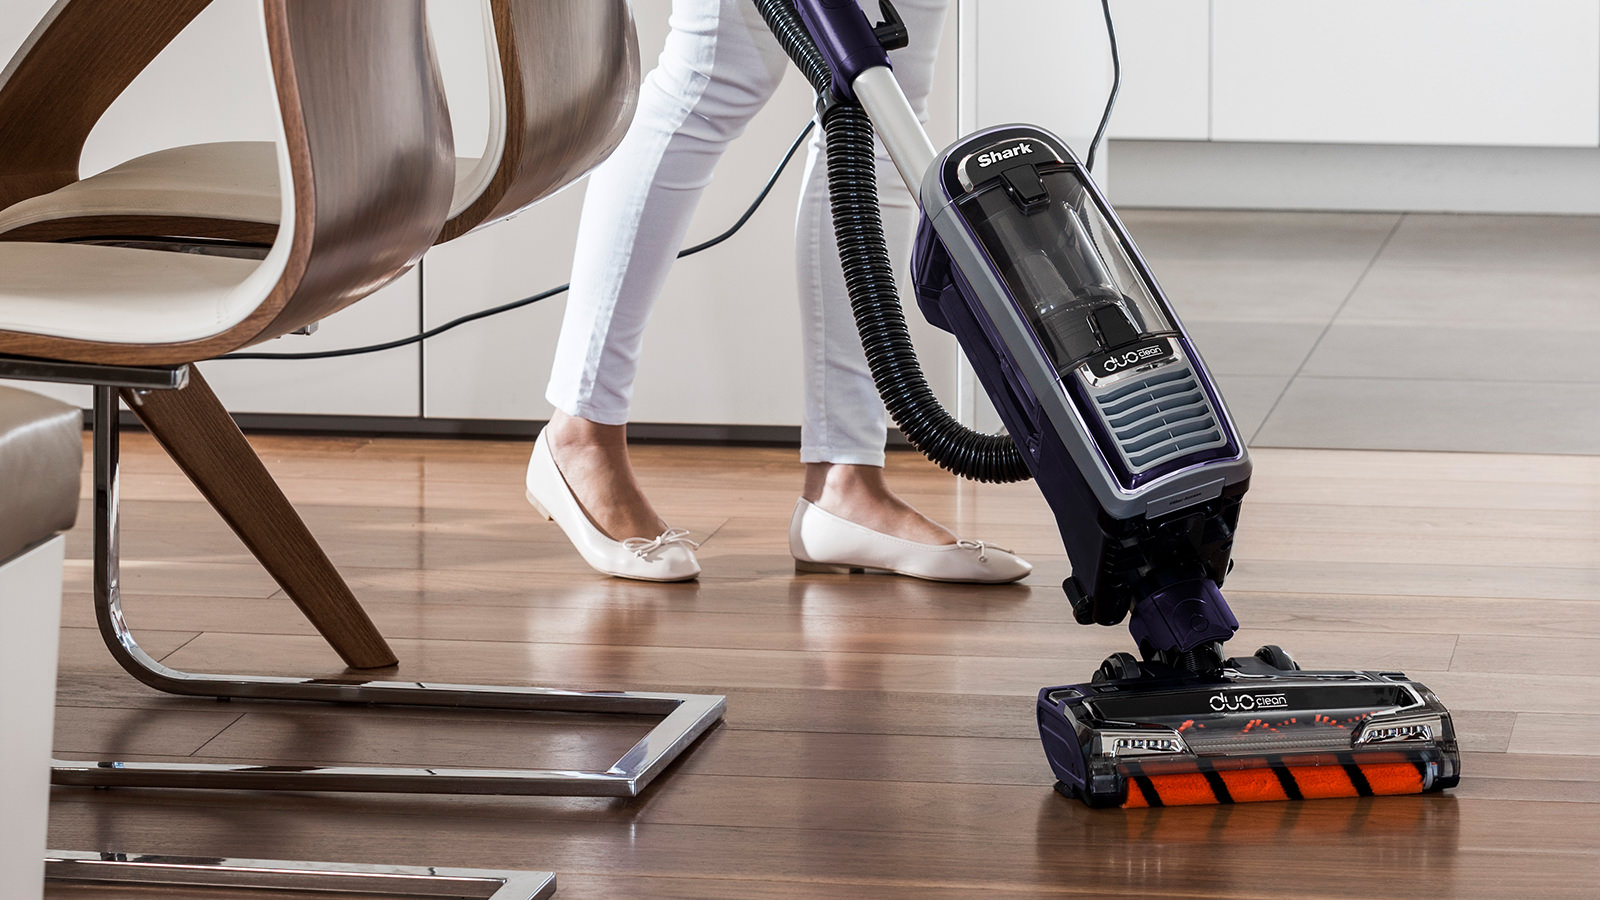 Easy to Use Shark DuoClean Upright Vacuum Cleaners with Powered Lift-Away AX910UK